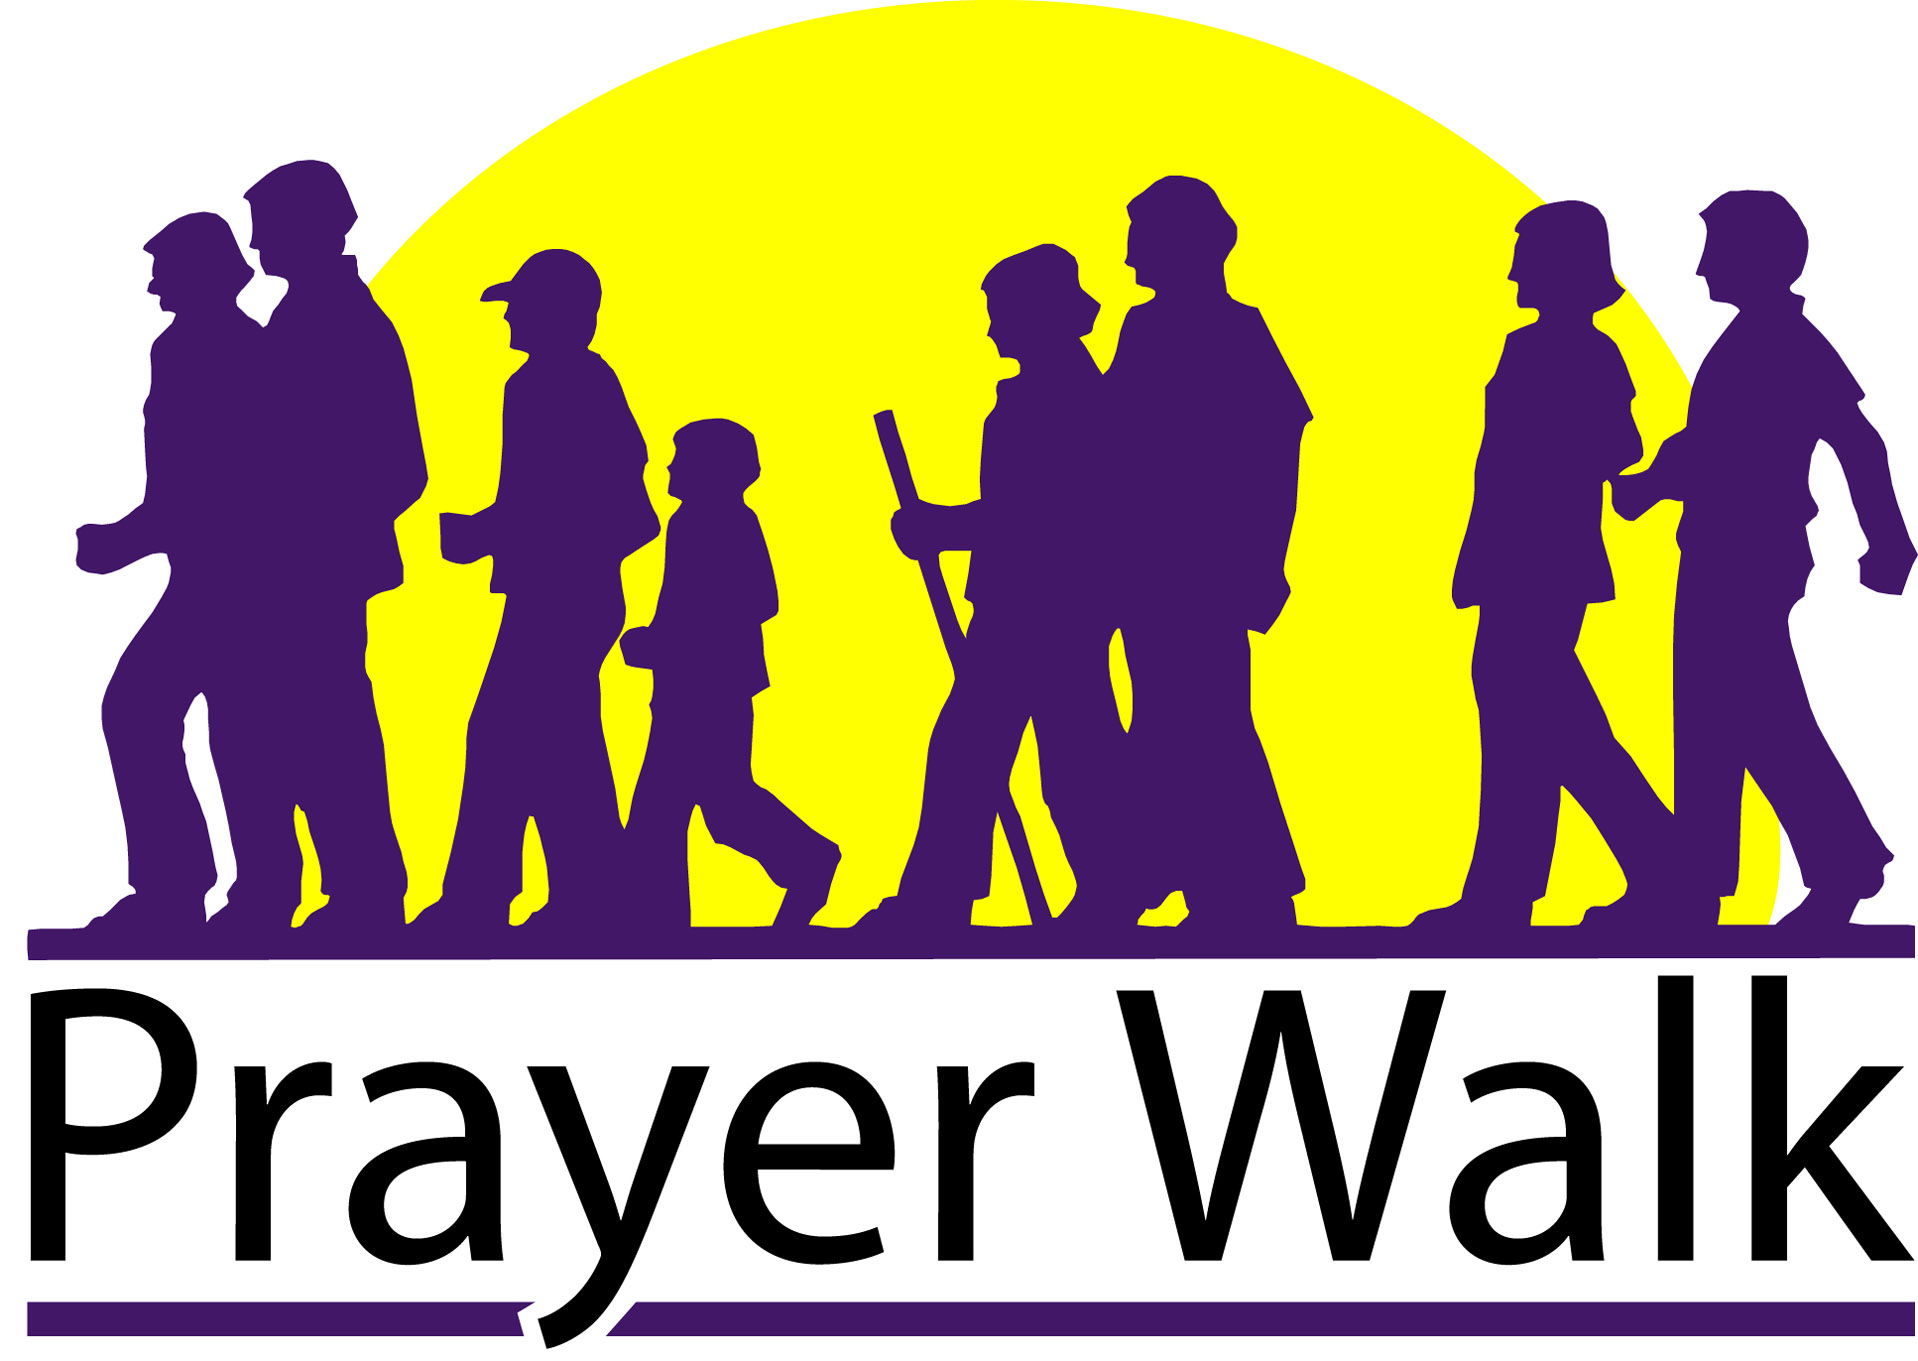 pray clipart free at getdrawings com free for personal use pray rh getdrawings com